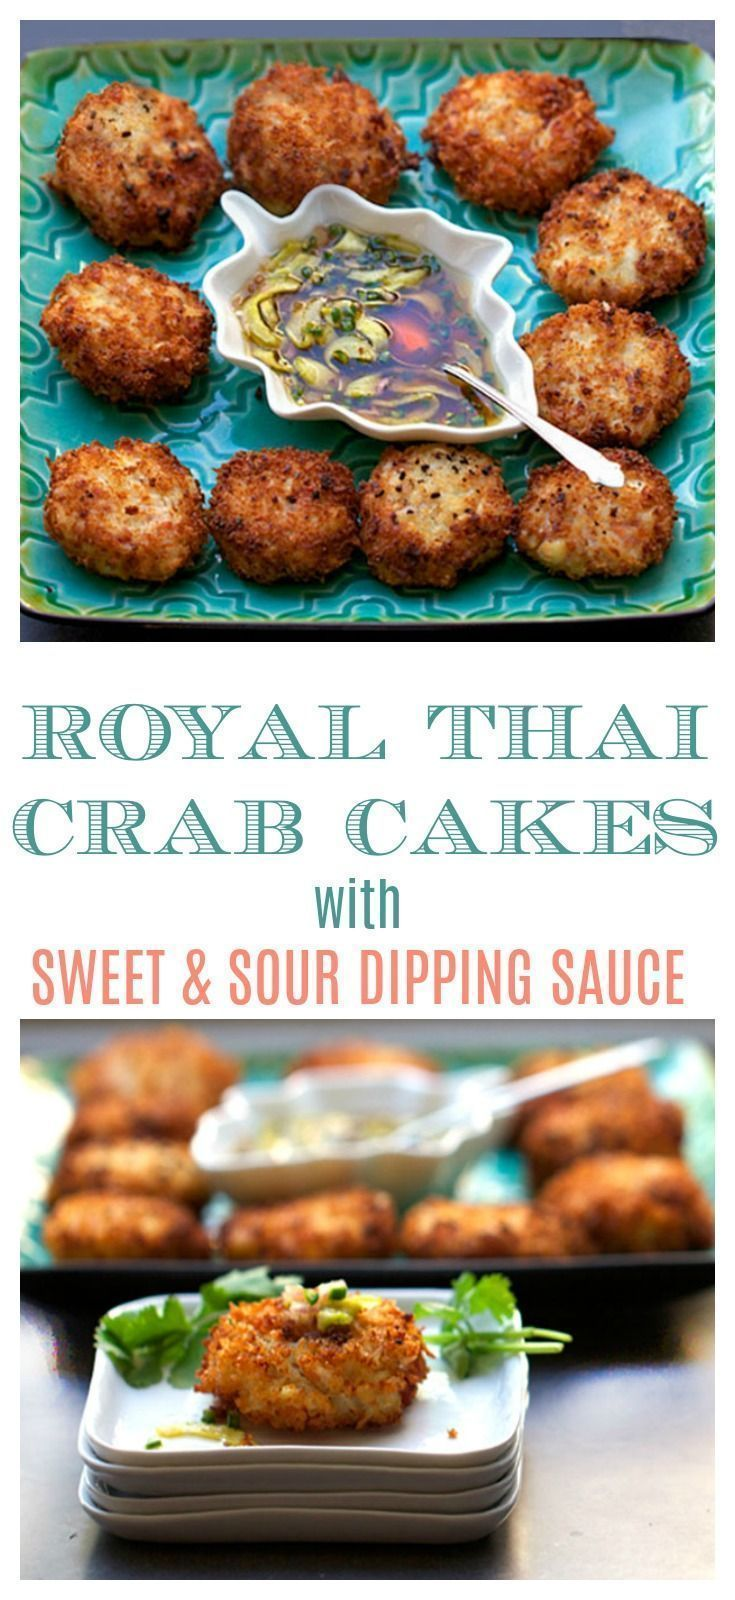 These Royal Thai Crab Cakes are made with fresh crab, ham and fluffy rice. They're delicately textured and showcase the natural sweetness of the crab. Totally delicious and fit for royalty! #Crab #recipe #thailand